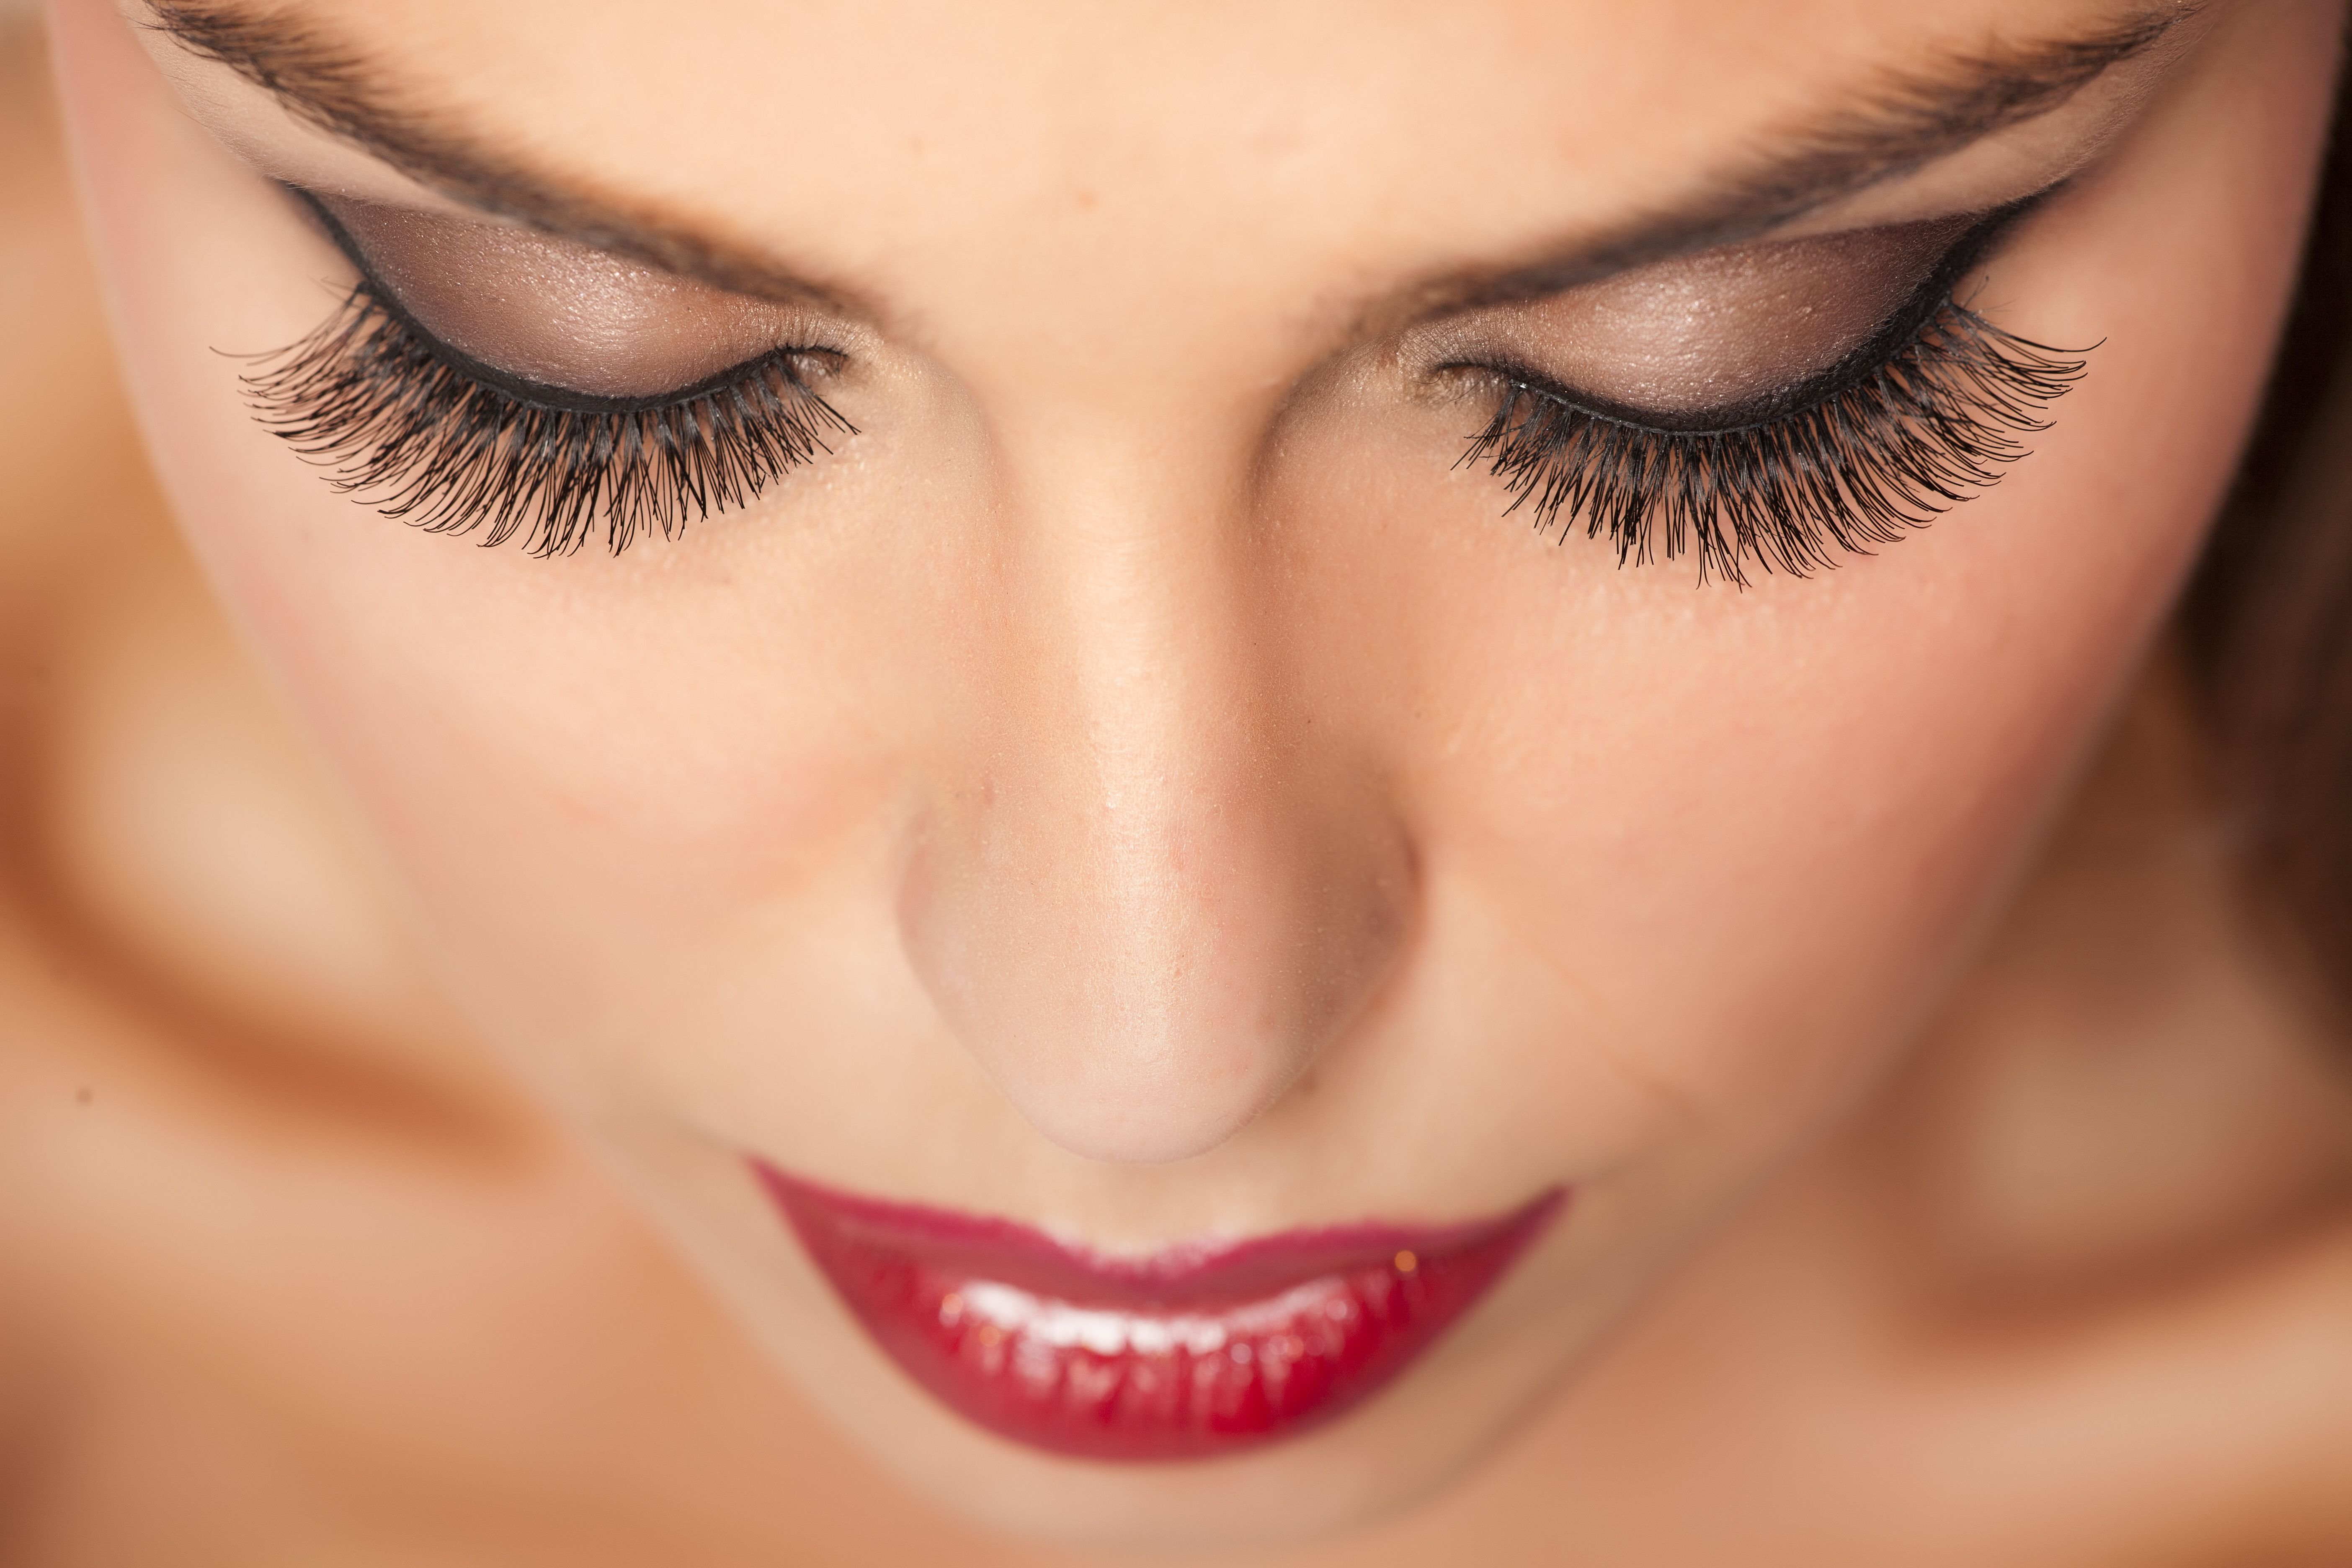 A woman with long, full eyelashes